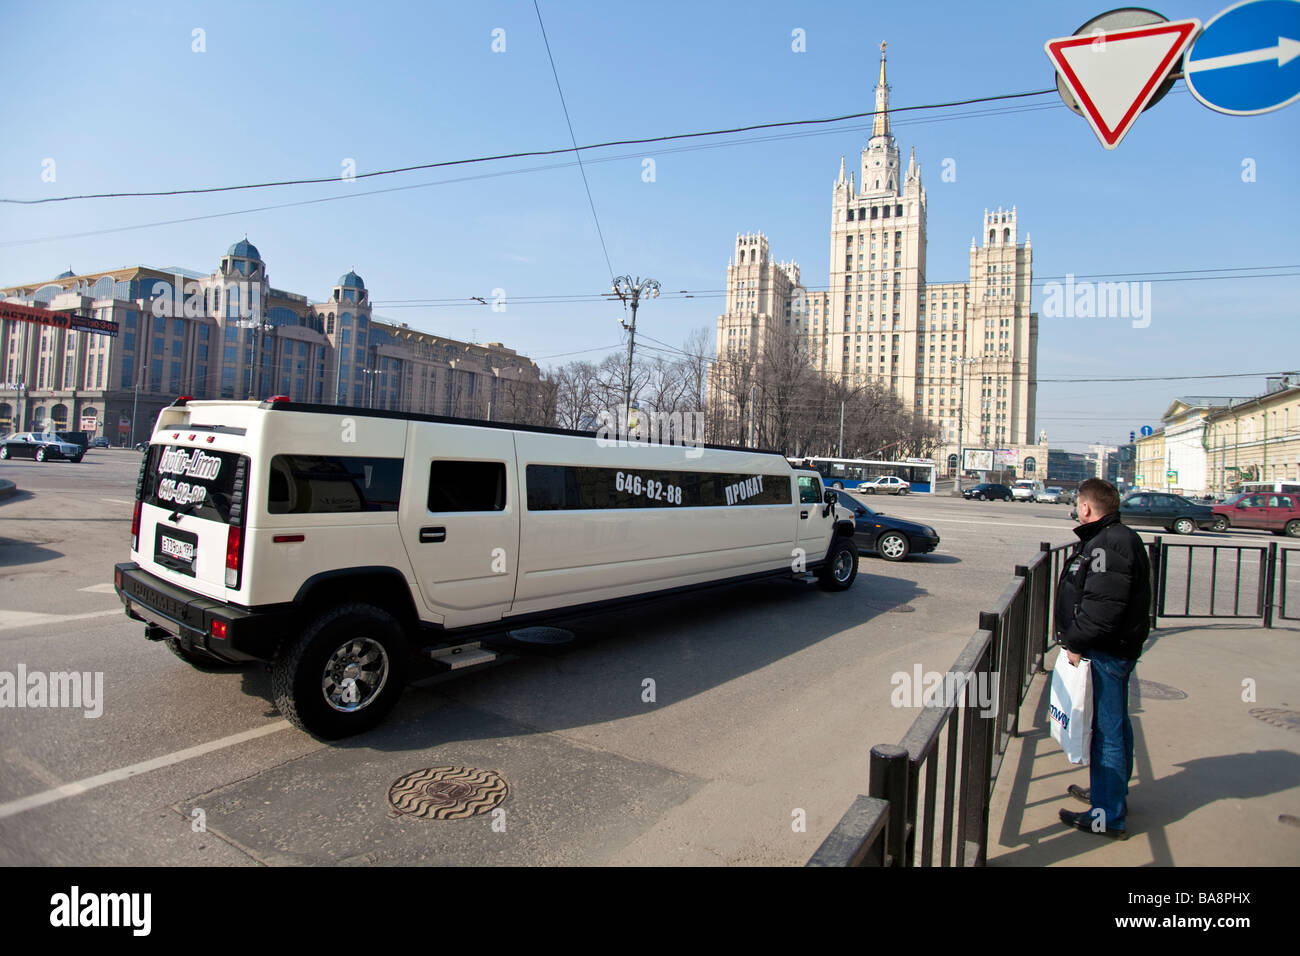 Hummer limo on Moscow street, Russia. - Stock Image